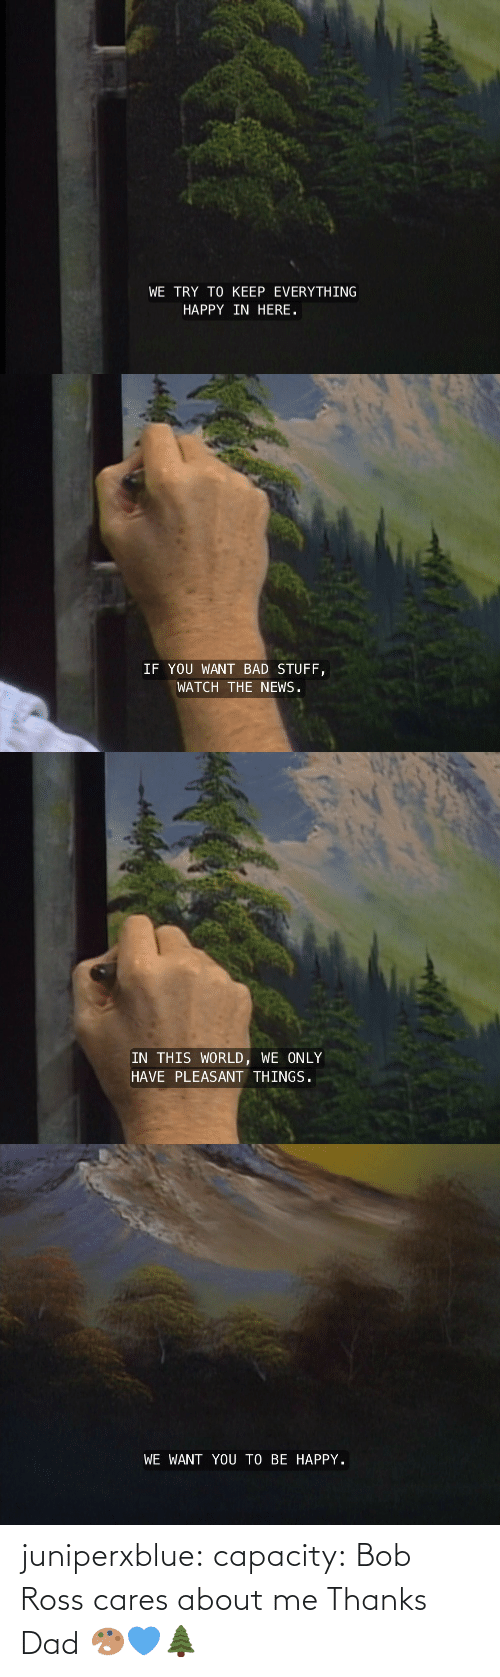 ross: juniperxblue: capacity:  Bob Ross cares about me   Thanks Dad 🎨💙🌲